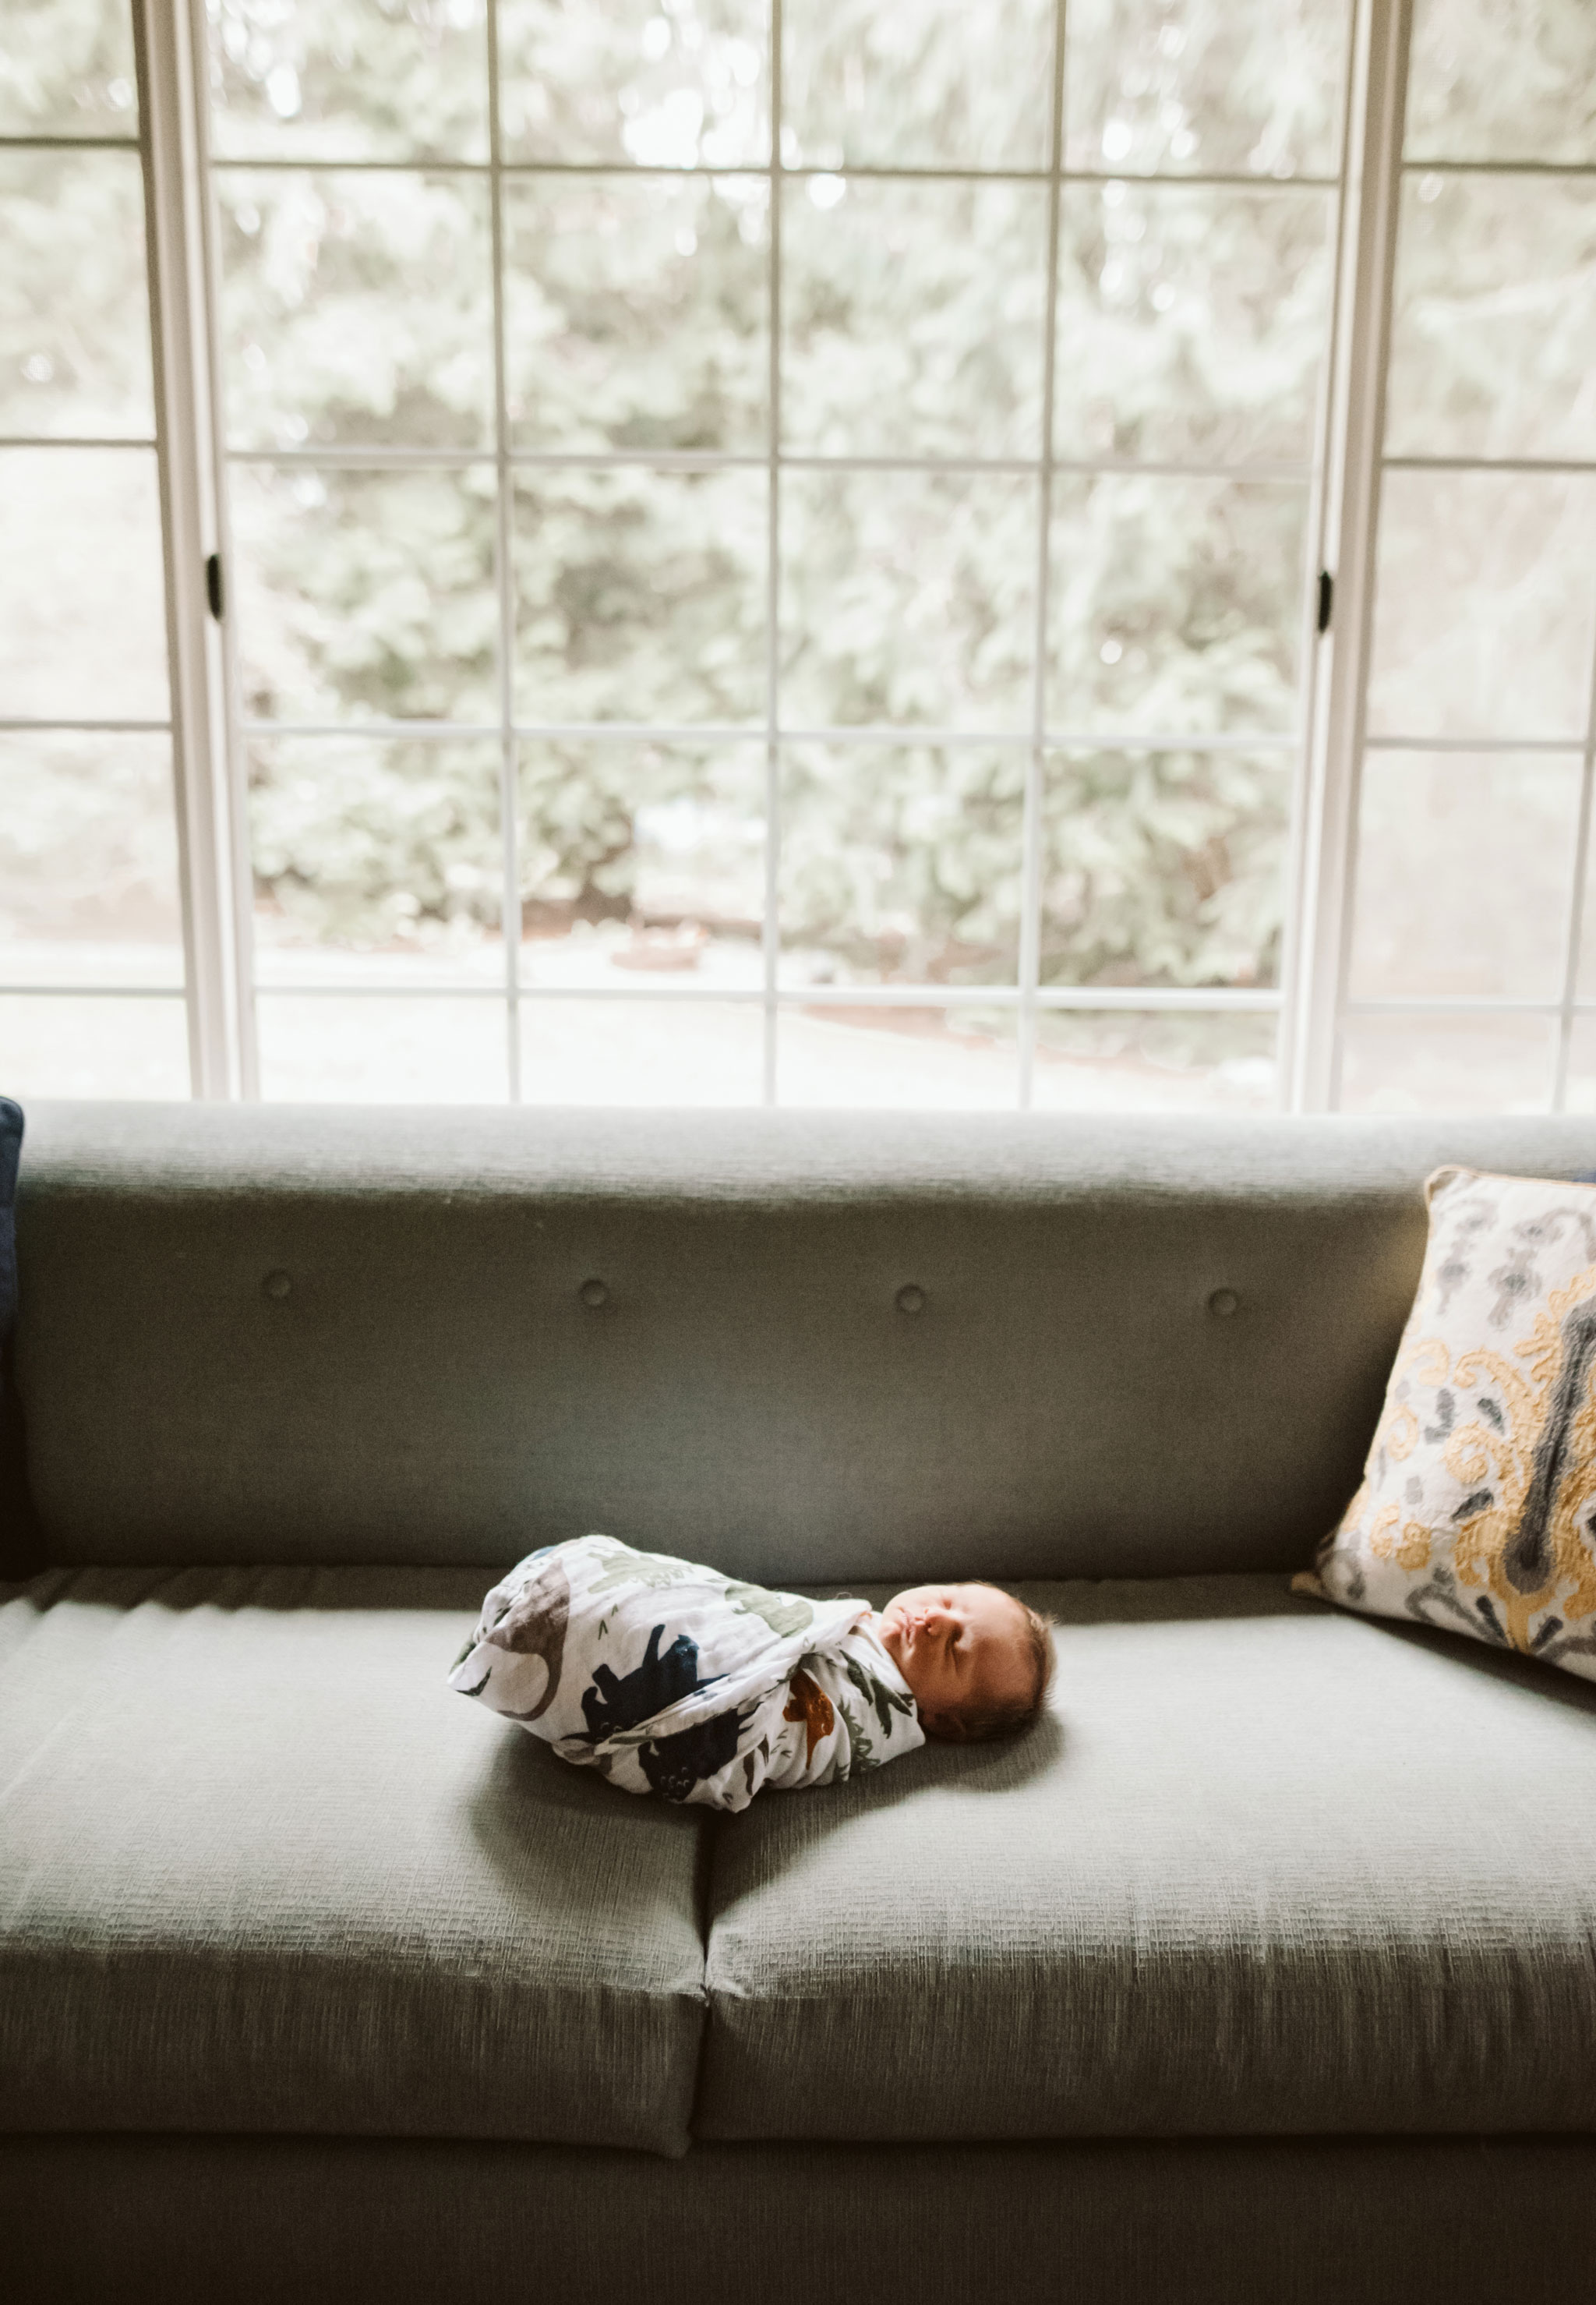 newborn baby boy on the couch in pretty light